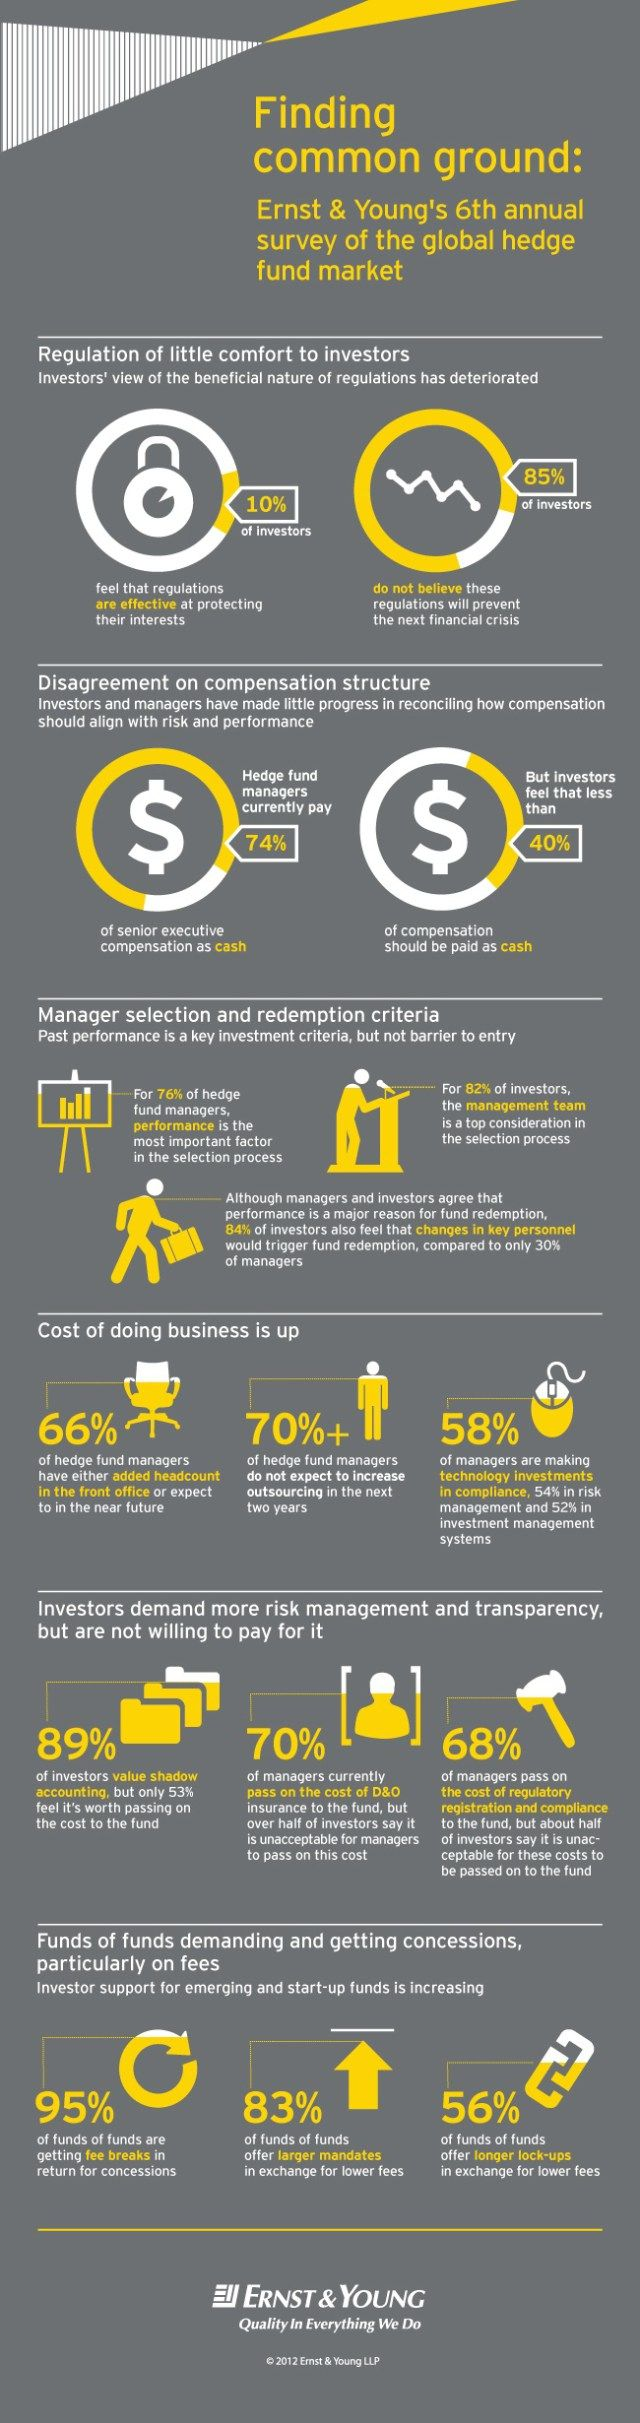 Trading infographic : Ernst & Young's 6th annual survey of the global hedge fund market. (info